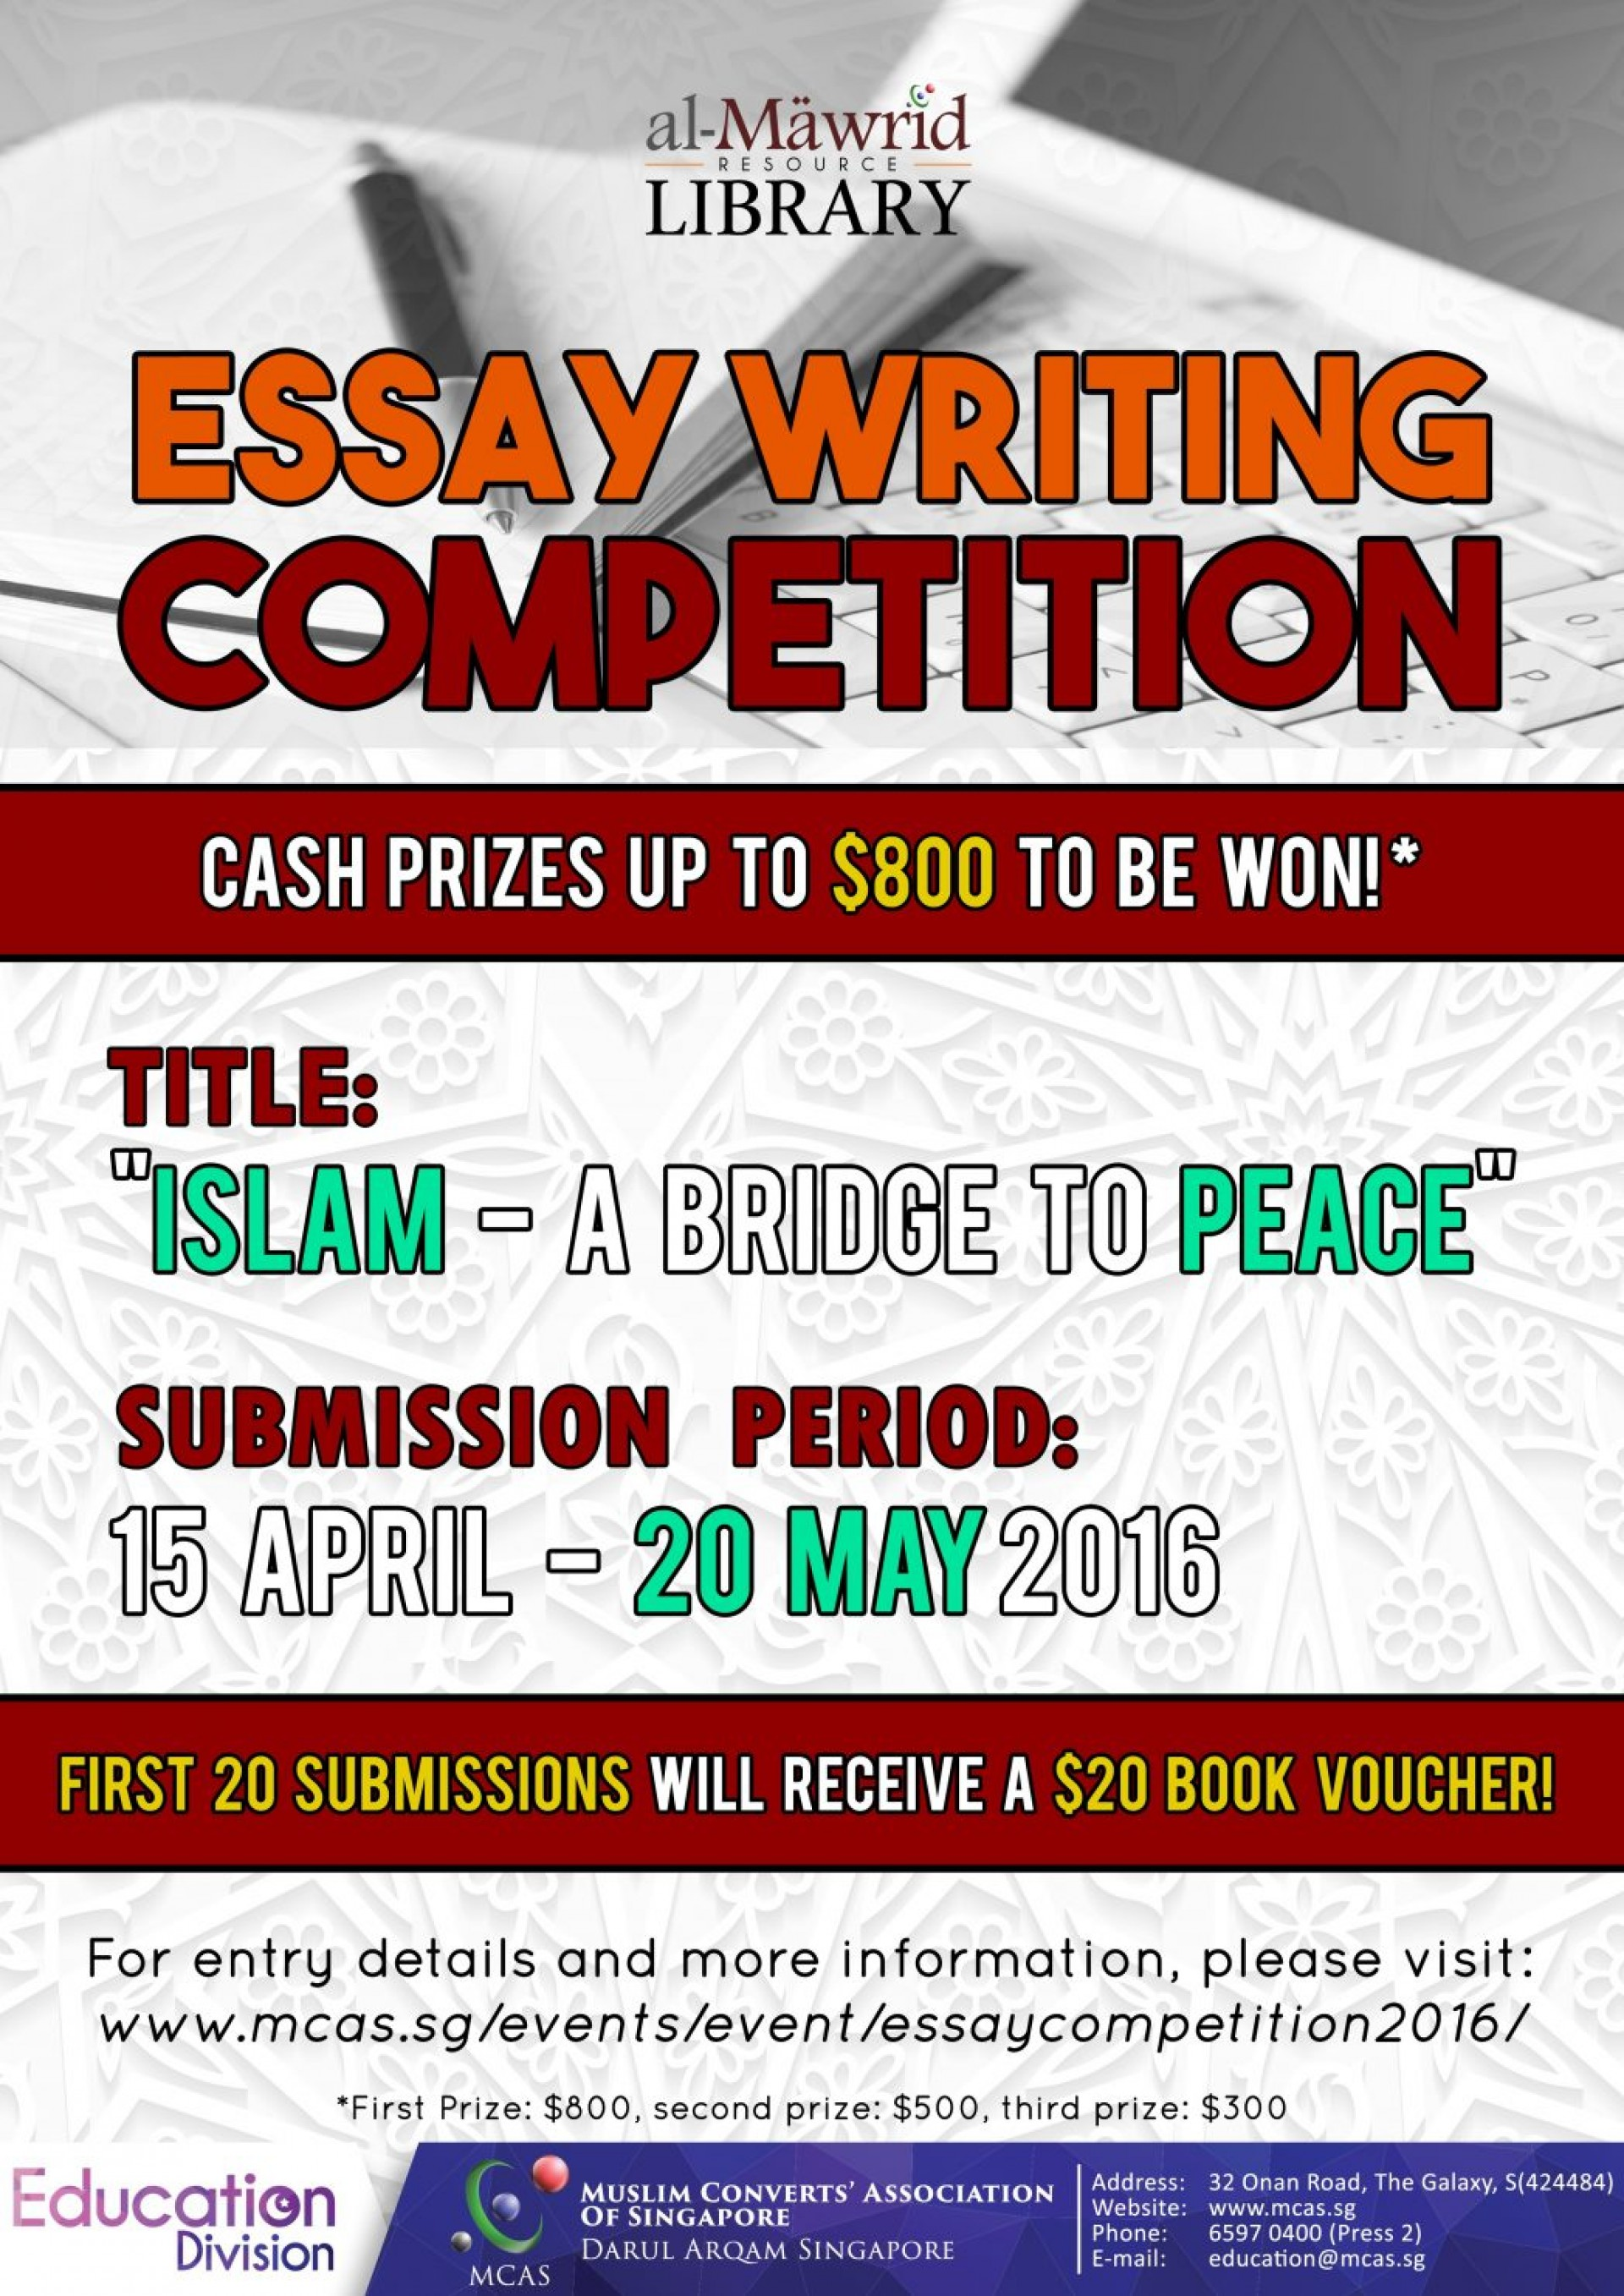 024 Buysay Com Ua Close Up Front Rank Firm In Australia To Writing Contest Criteria Version 2 Competition New Philippines Rubrics Mechanics Guidelines Tips For Nutrition 1048x1482 Incredible Essay International Competitions High School Students Rules By Essayhub 1920